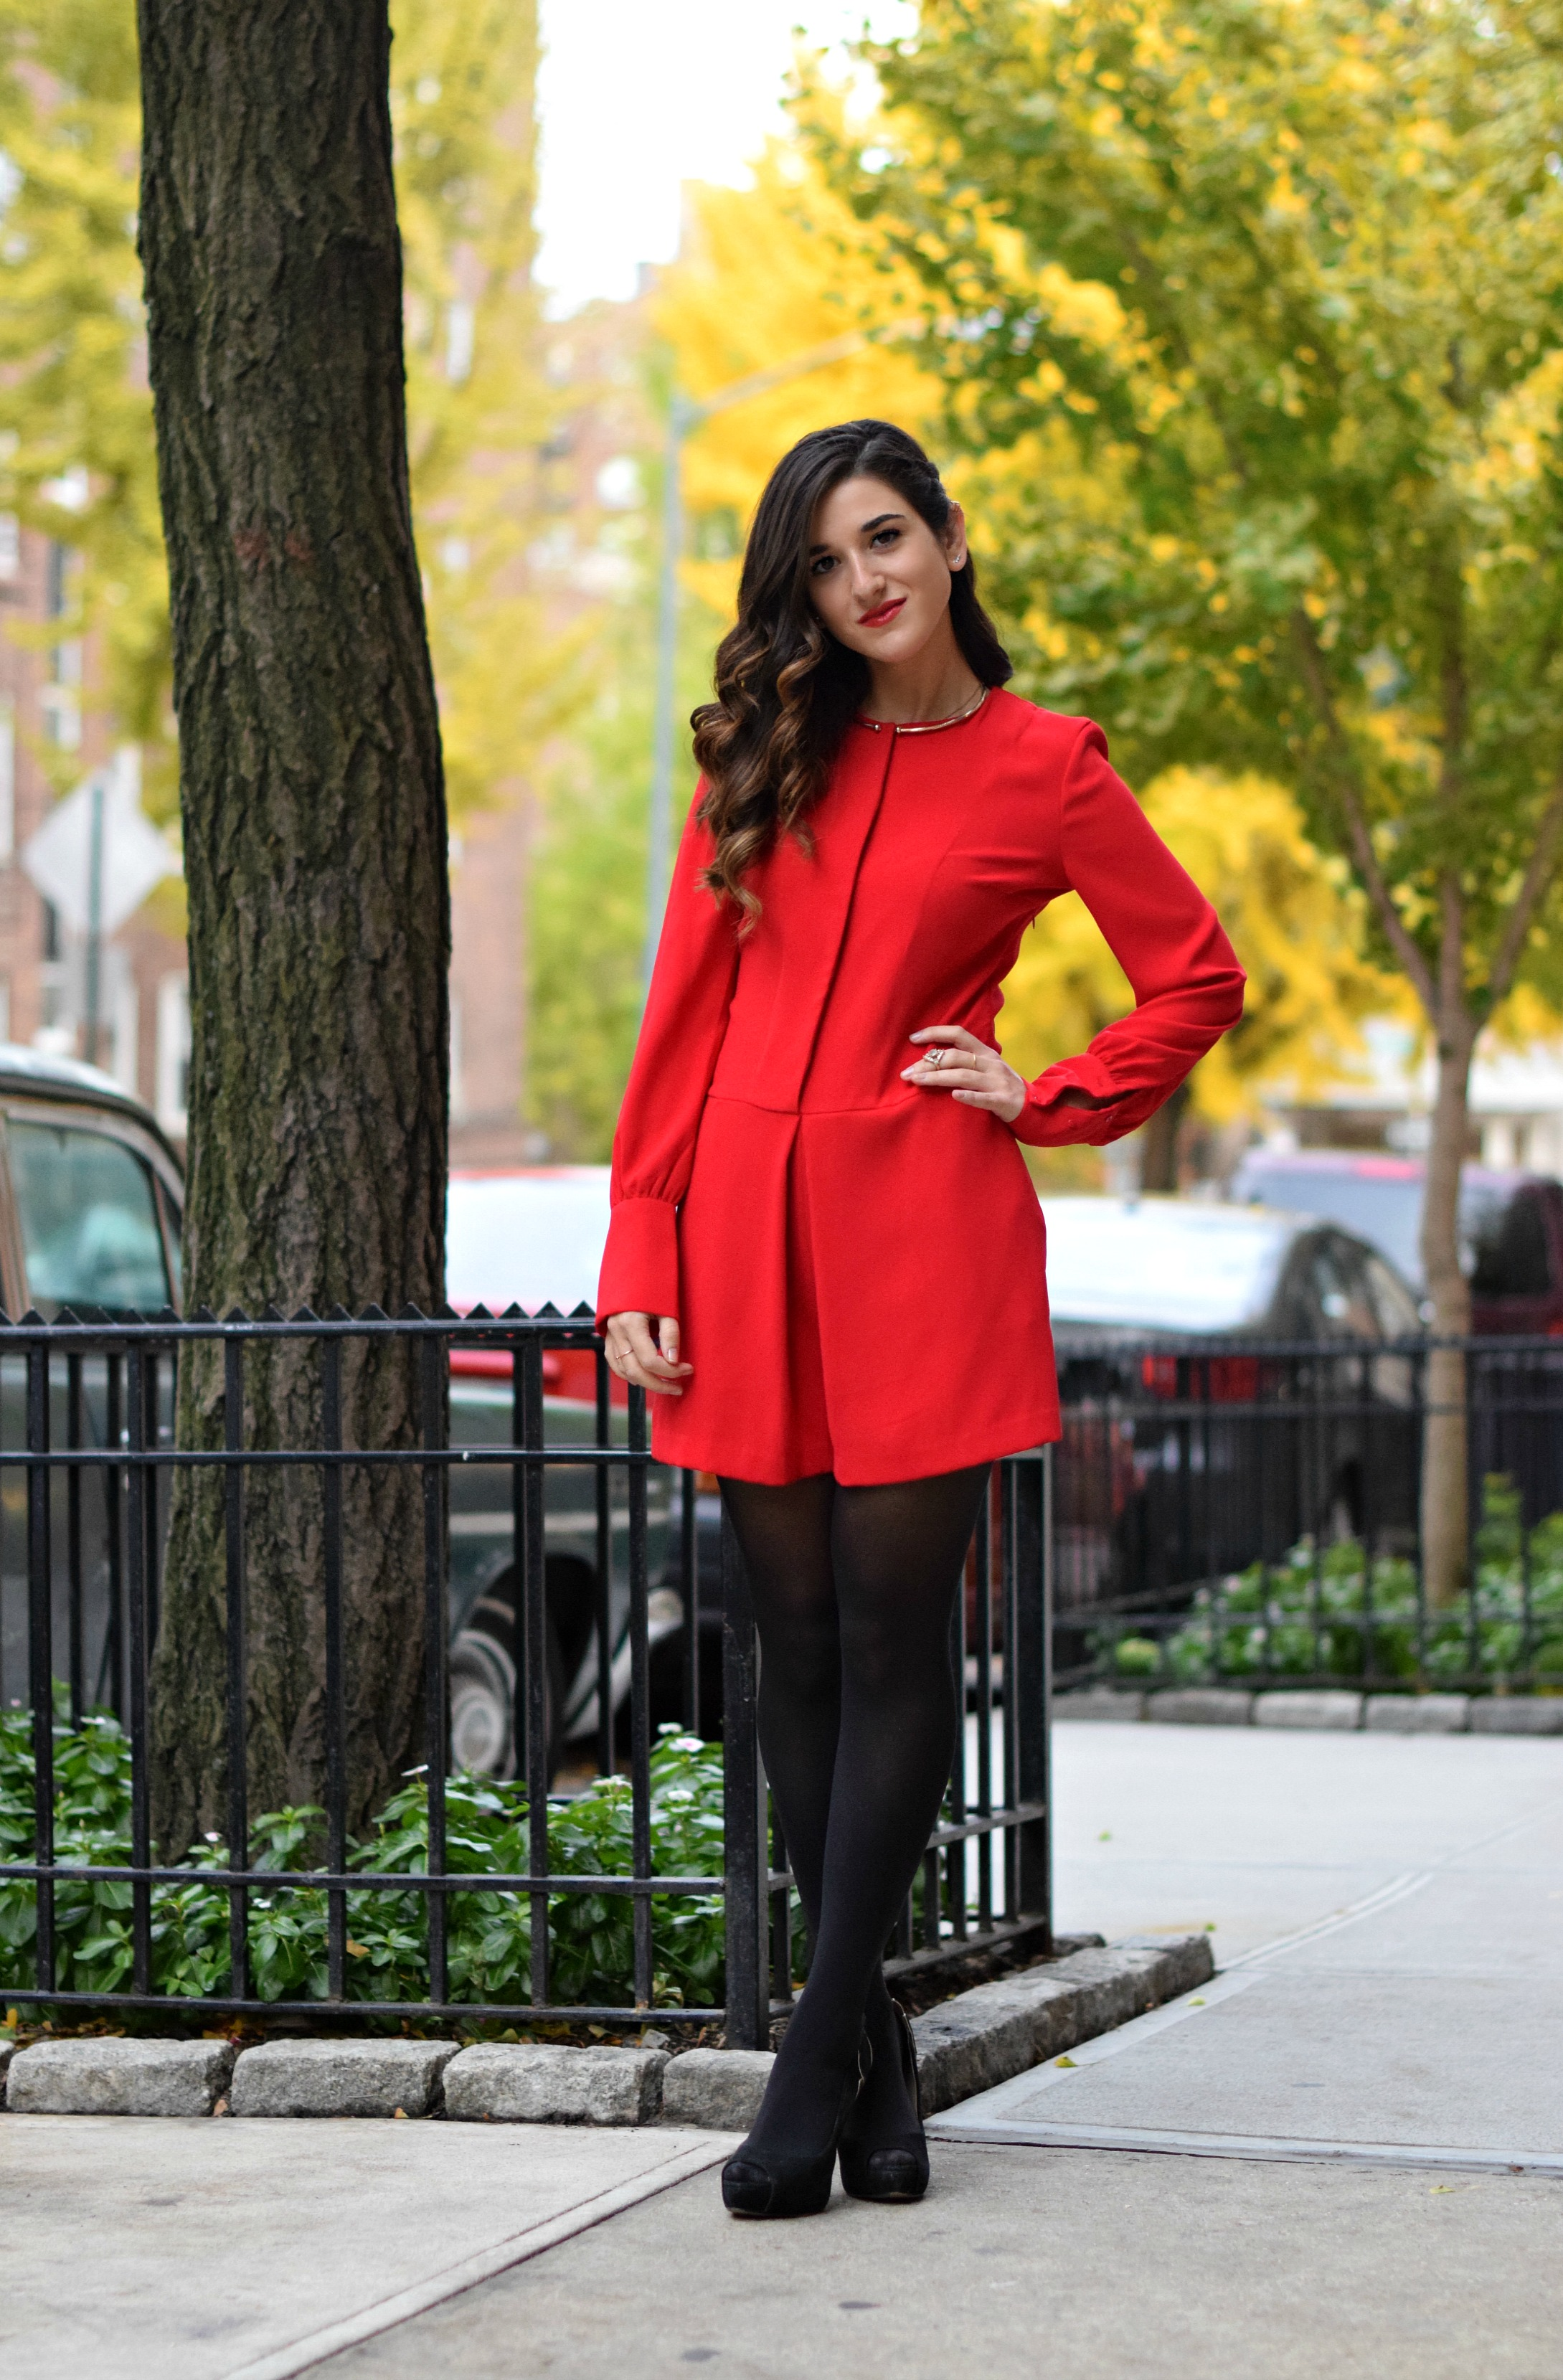 Tights | Chic And Comfortable Thanksgiving Outfit Ideas For Women